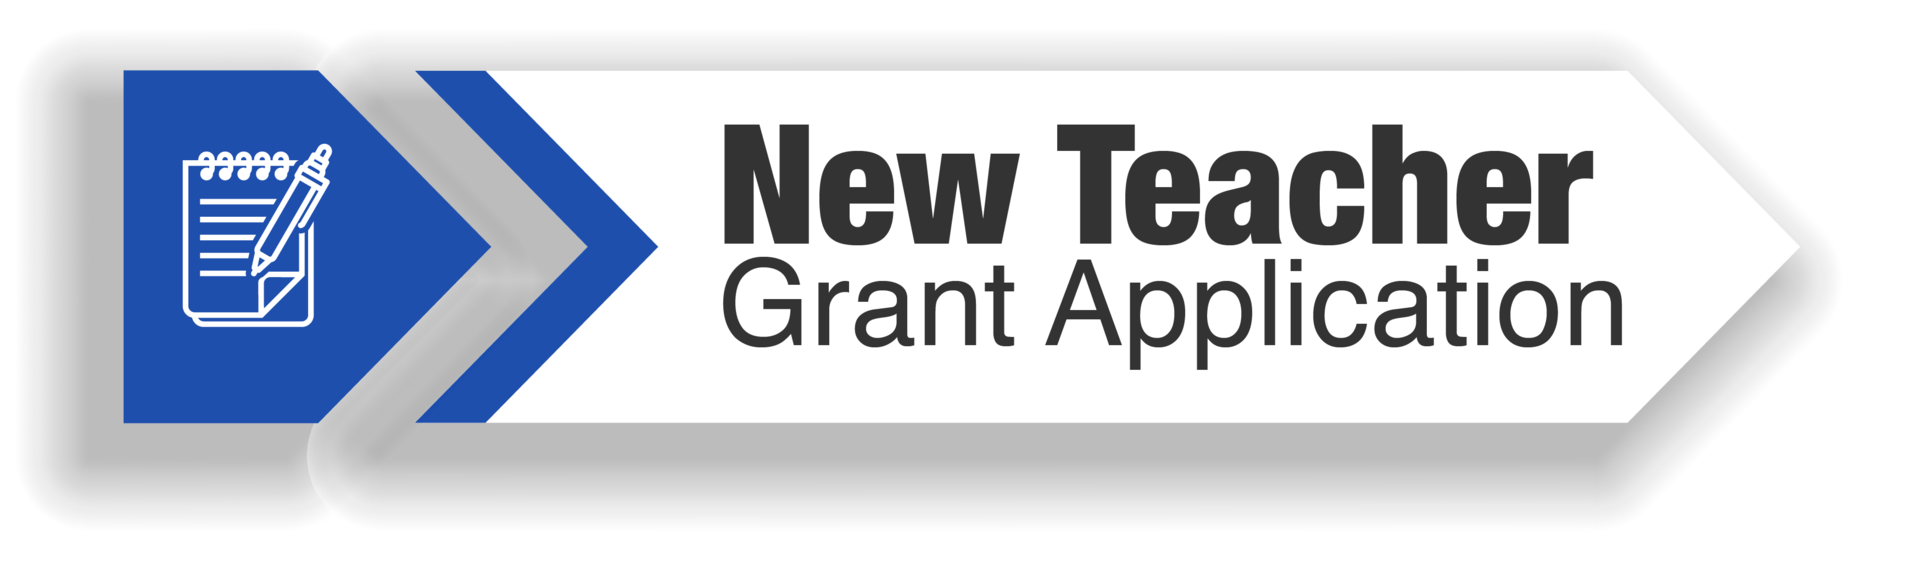 New Teacher Grant